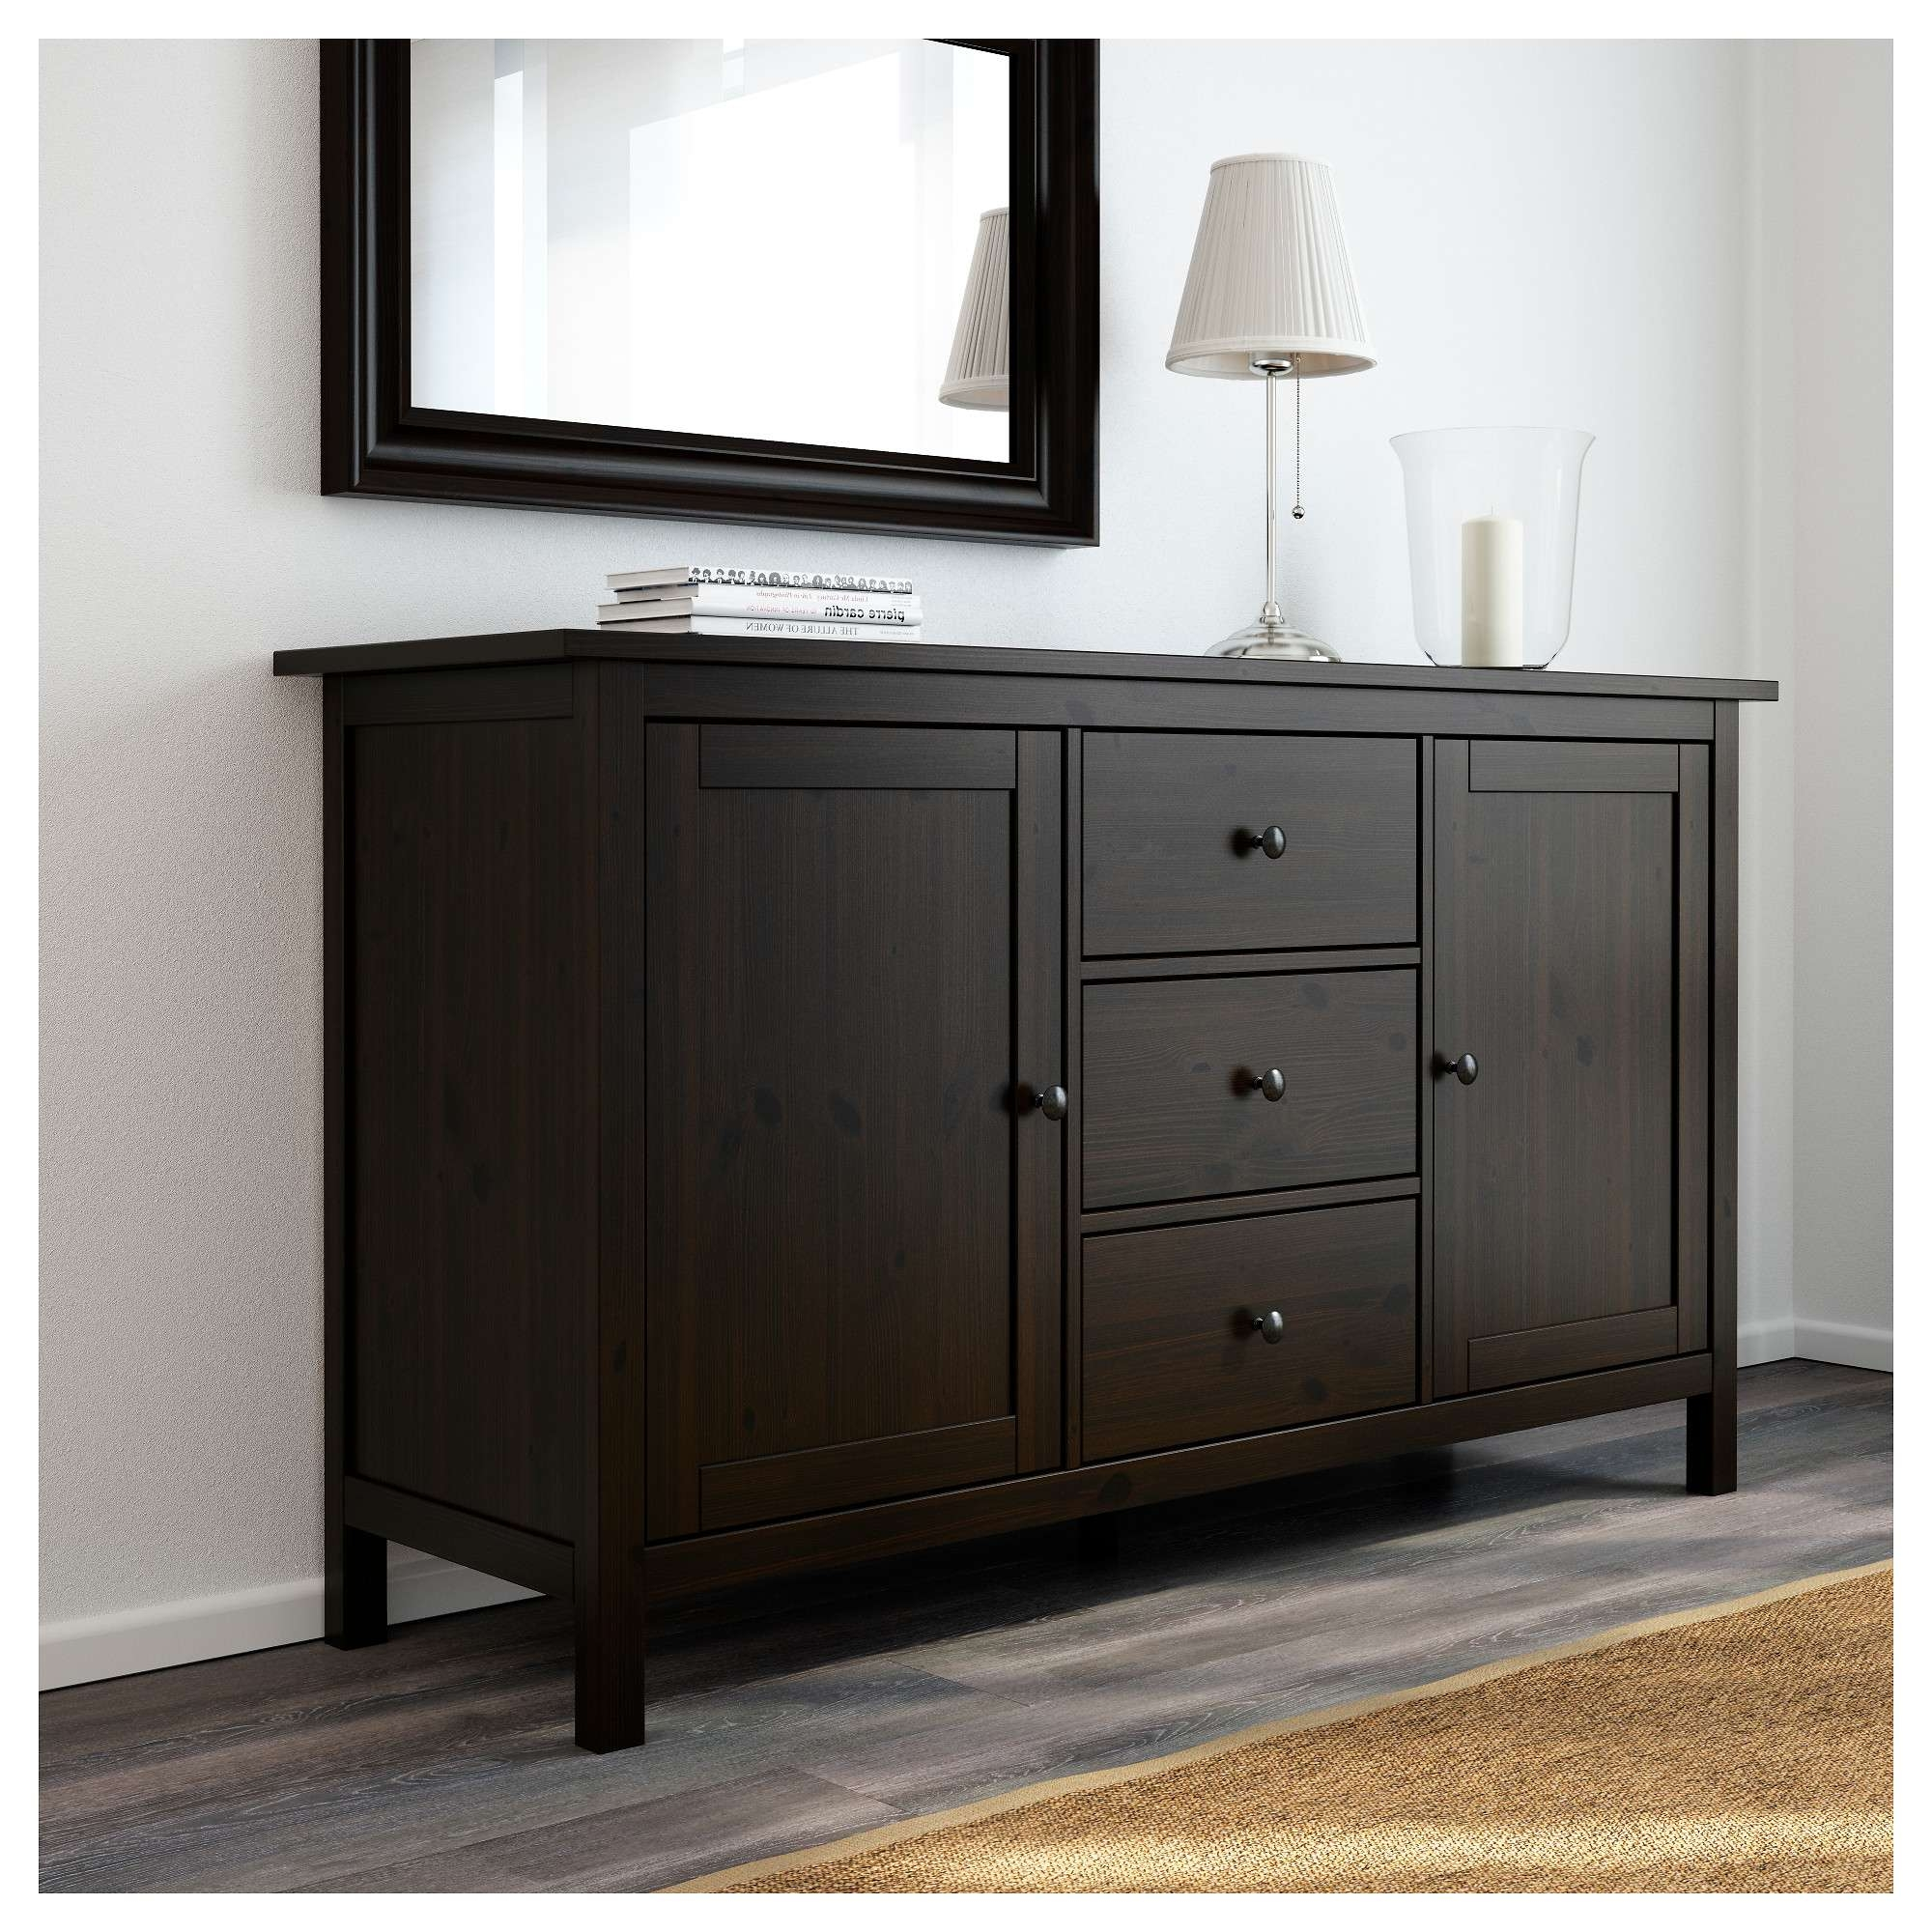 Hemnes Sideboard – Black Brown – Ikea In Black Sideboards And Buffets (View 9 of 20)